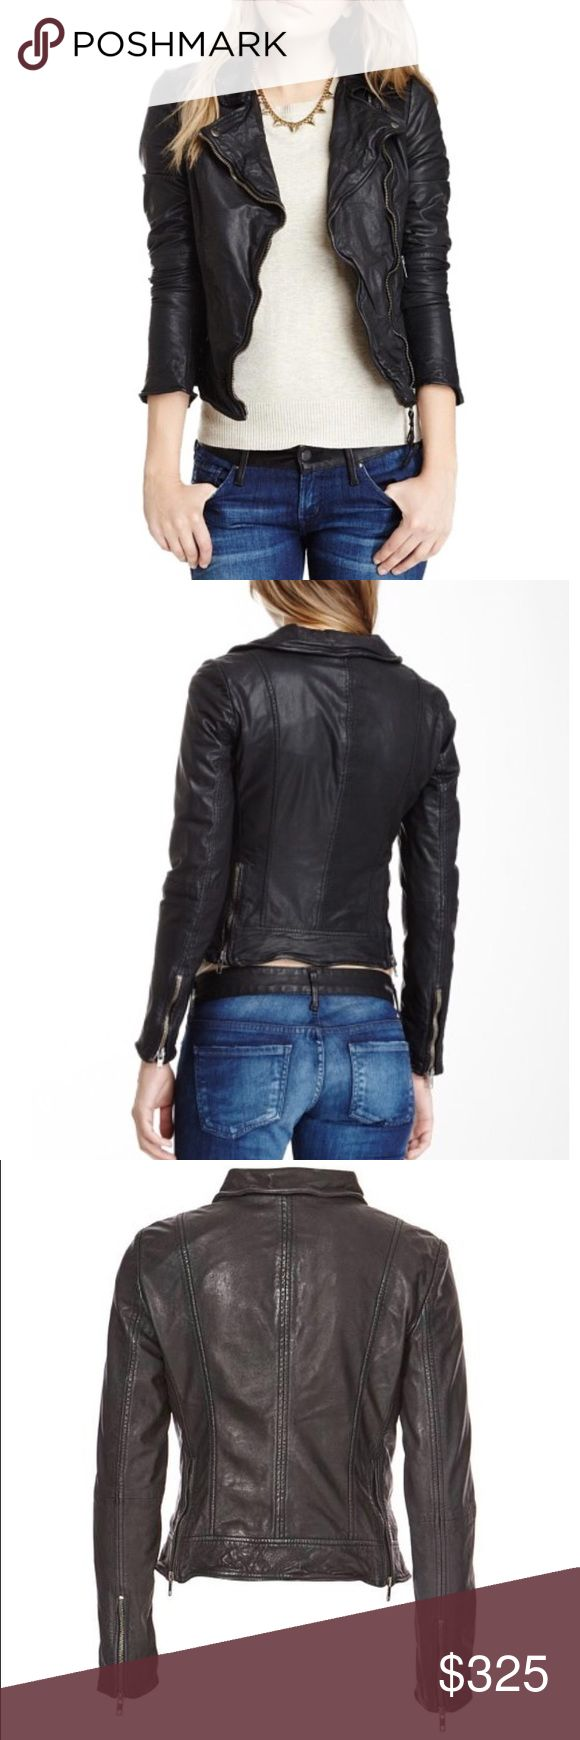 Muubaa Sabik Black Leather Biker Jacket Muubaa Sabik Biker jacket in super soft black leather. Fitted classic biker with asymmetric zip opening and leather straps. Flattering cinched back with edgy zipper vents that can be worn open or closed. Front pockets, long sleeves with zipper cuffs. Slim wires in collar and lapels add structure and allow you to style and sculpt its shape. Garment washed leather brings out the texture and character and lend a slightly distressed, vintage appearance…